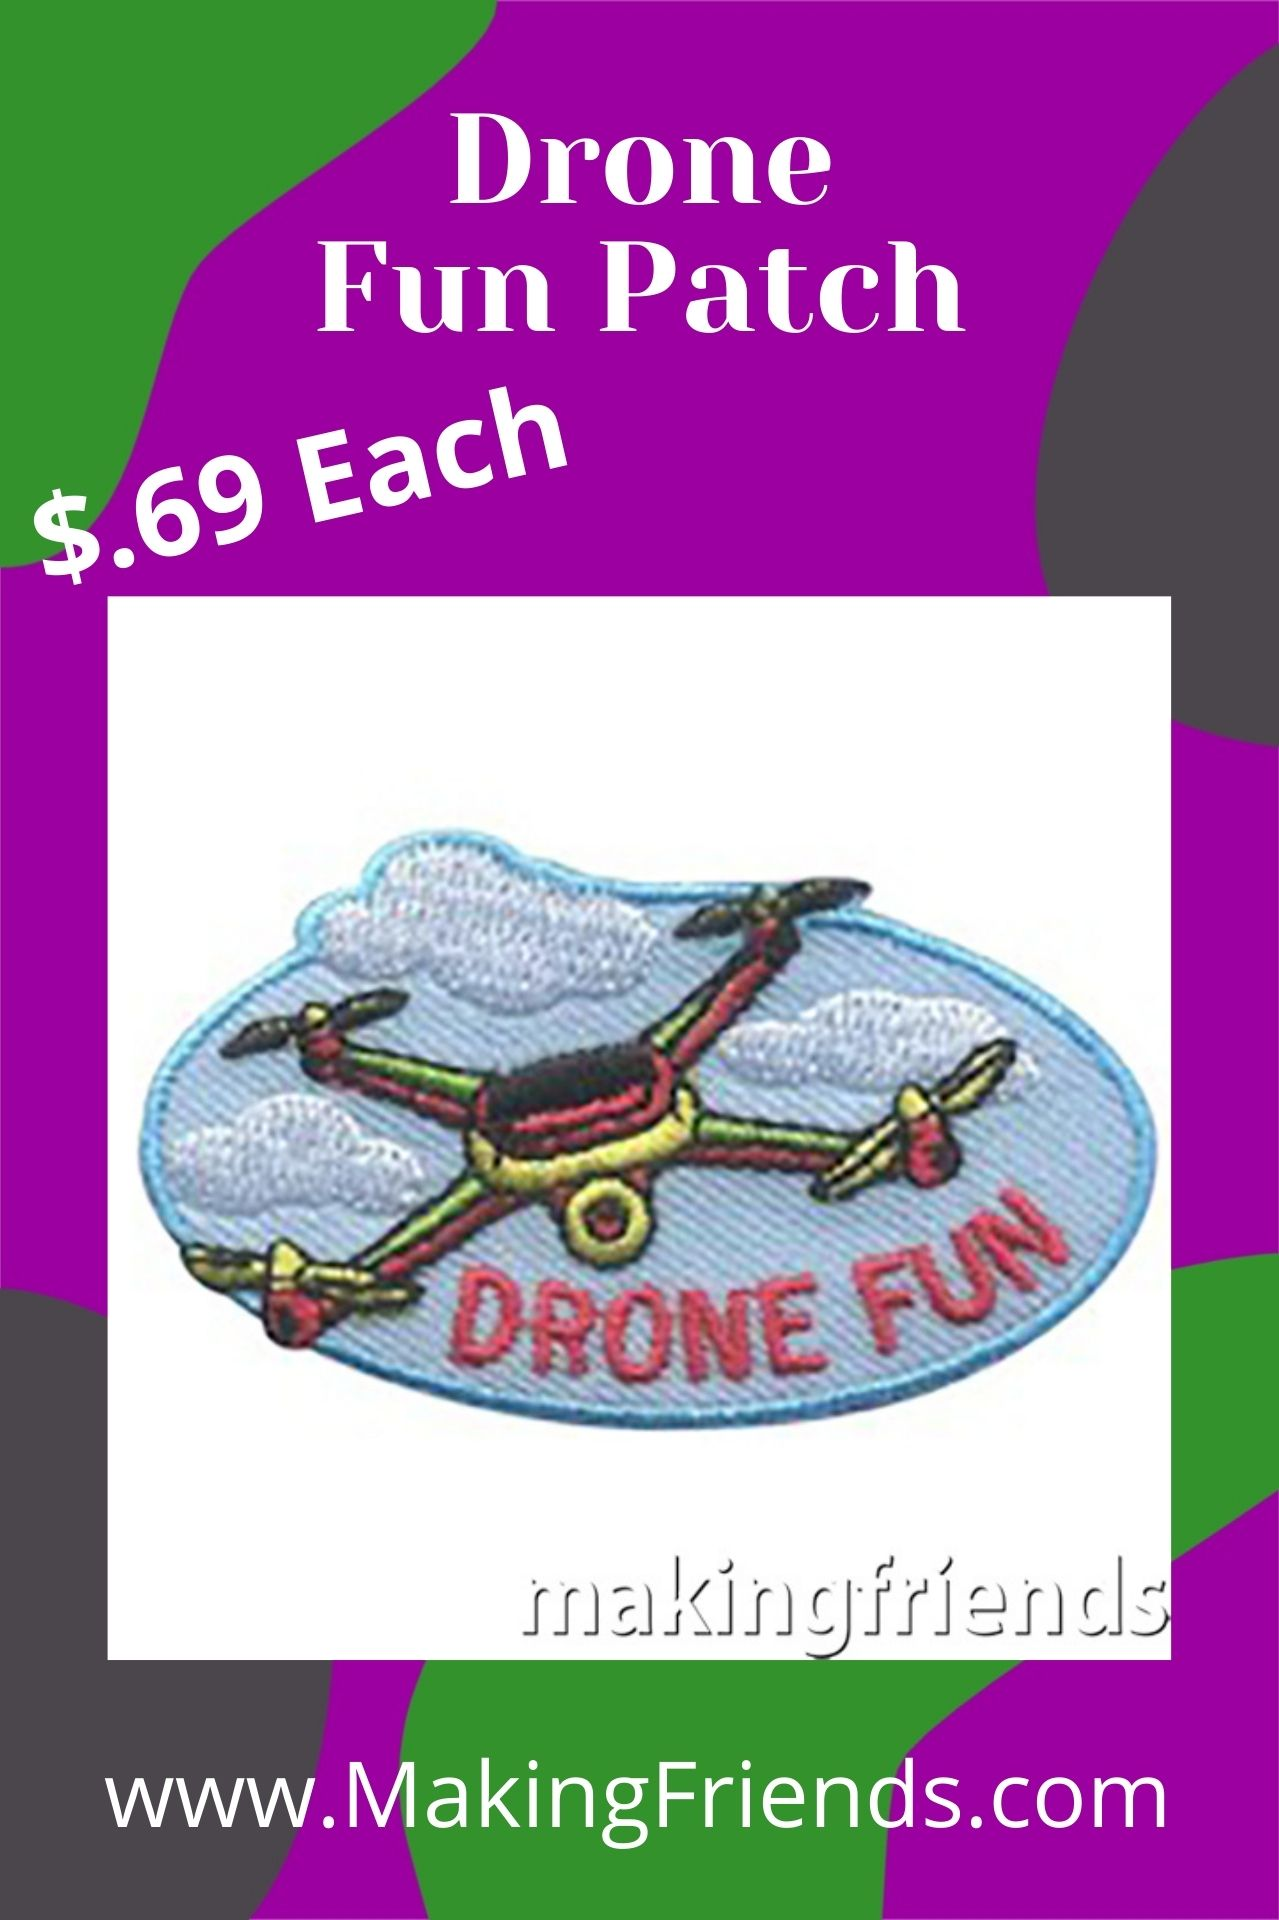 Have fun with your girls learning about drones. Some clubs will teach them about how they fly! The patch is $.69 each, free shipping available! #makingfriends #drones #dronepatch #funpatch #girlscouts #gspatches #science #stem via @gsleader411